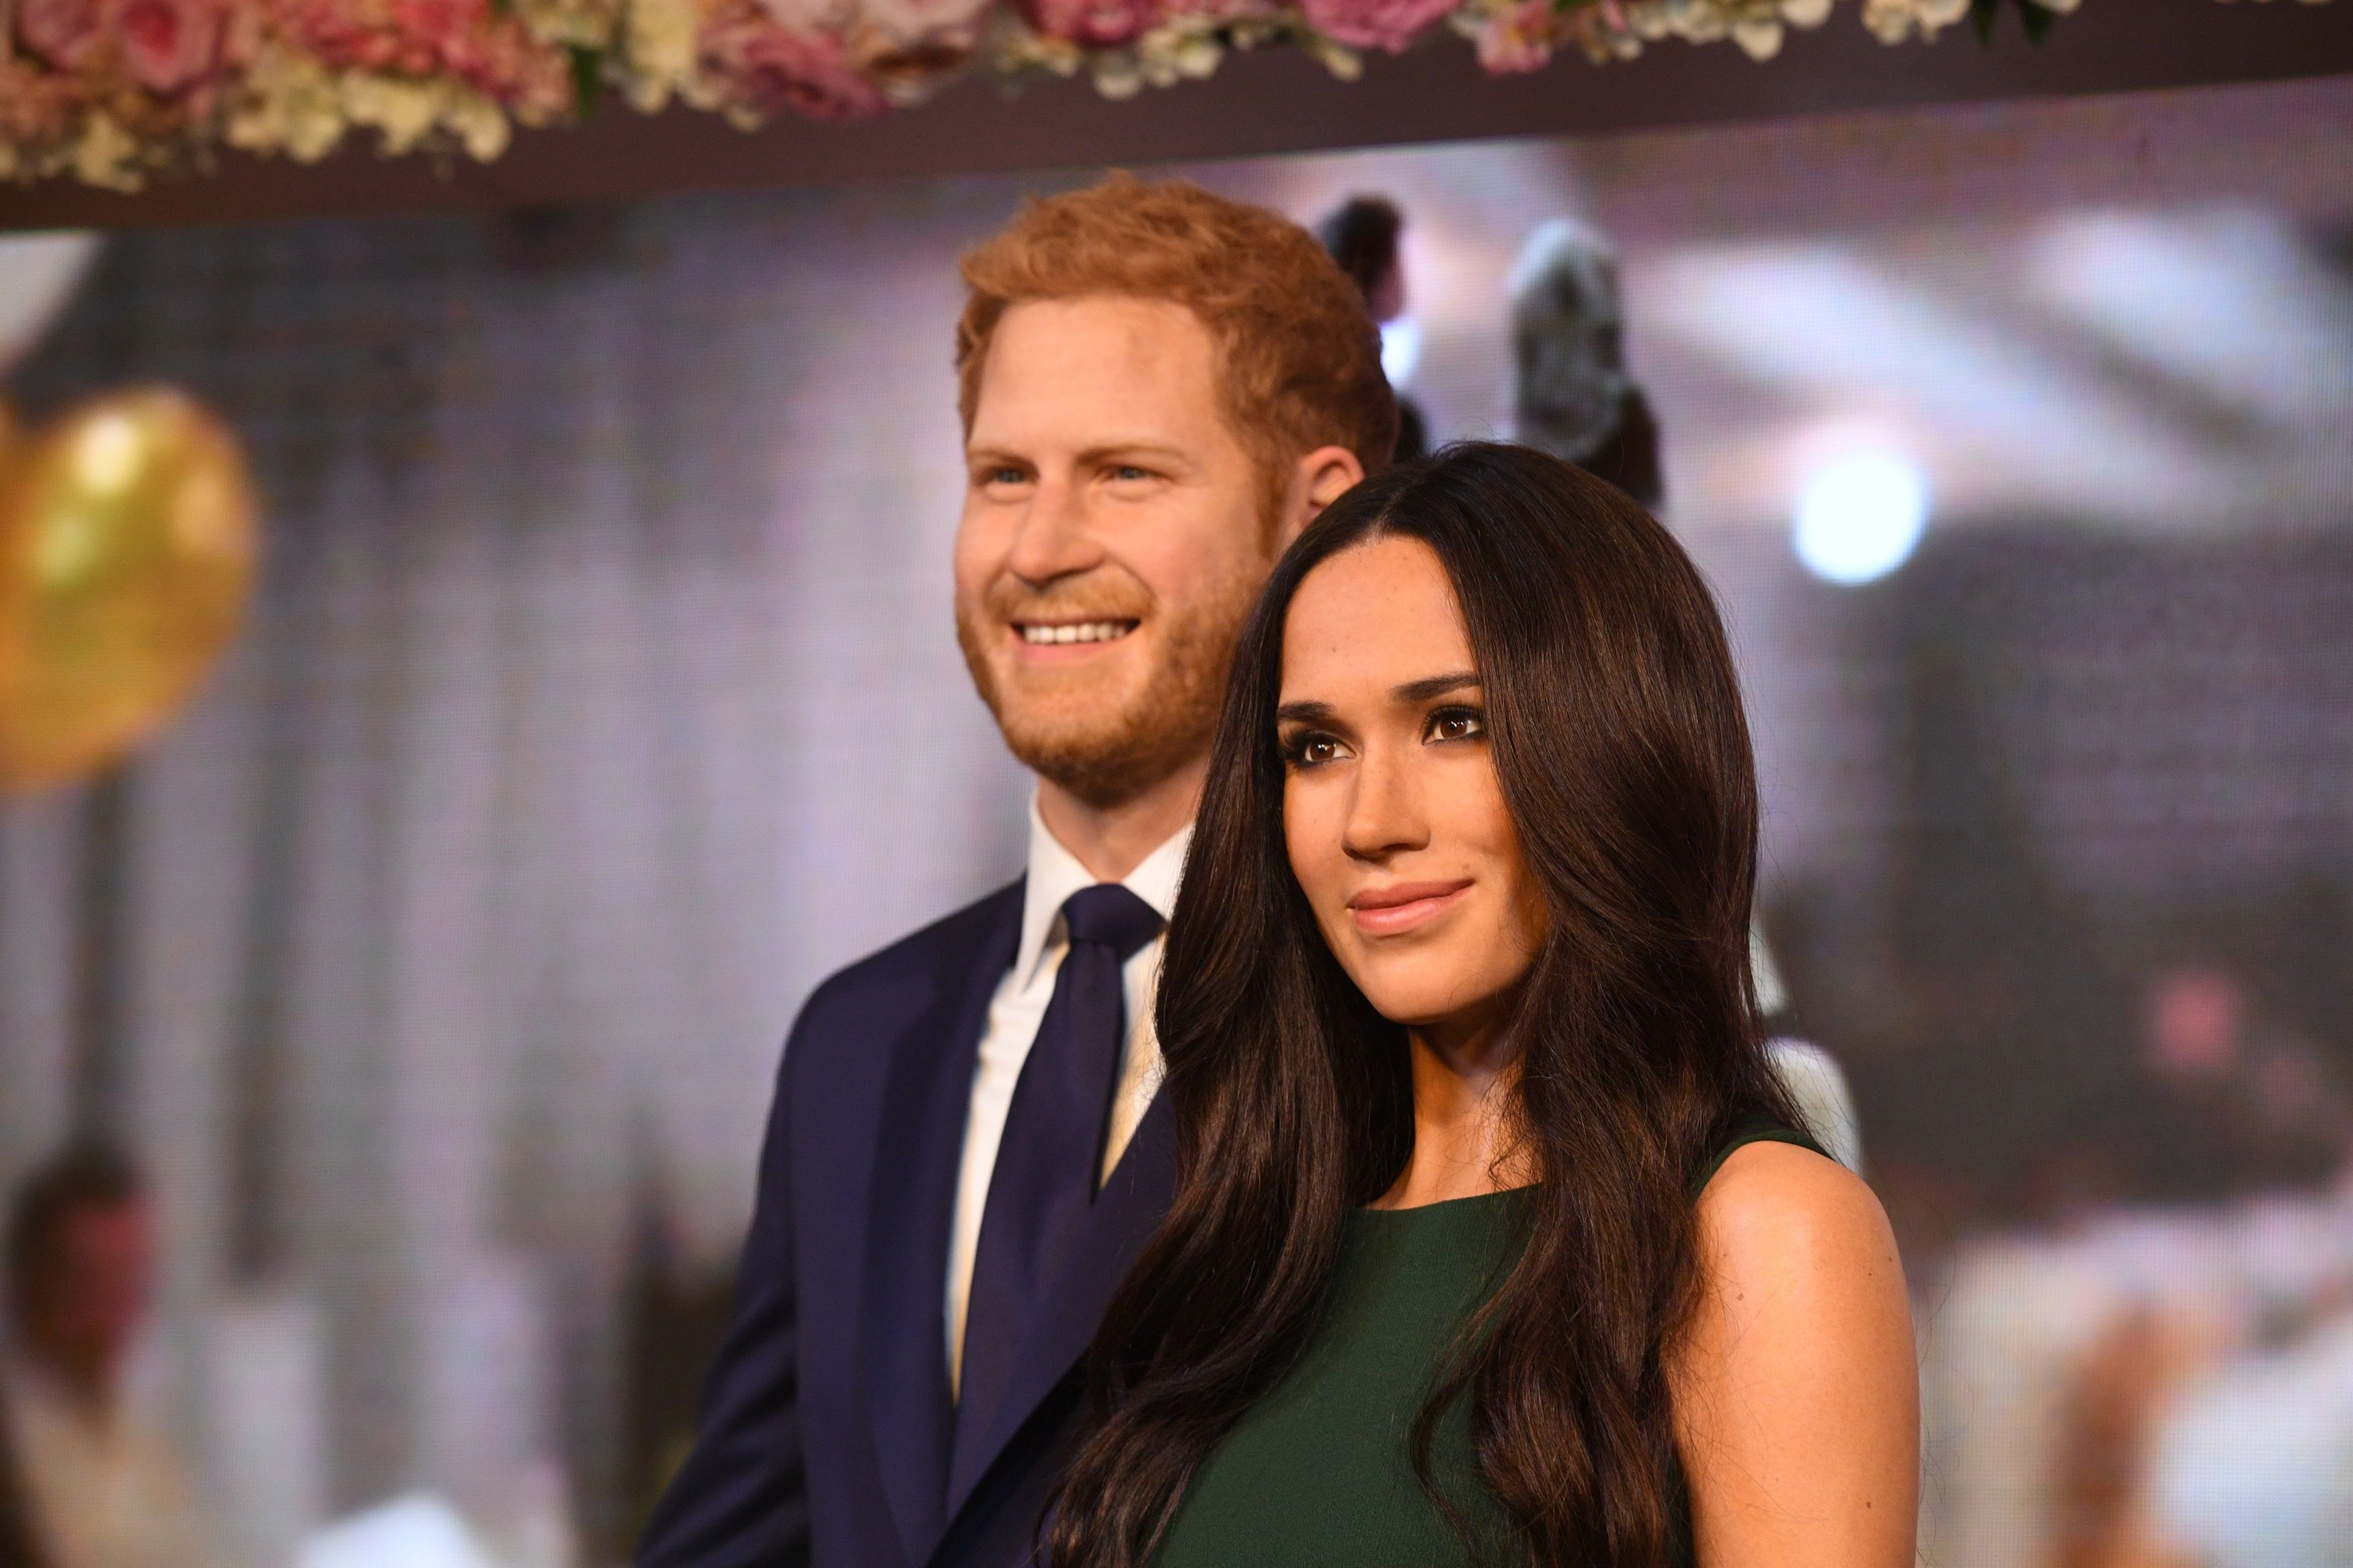 U.S.  bishop will give address at Harry and Meghan's wedding